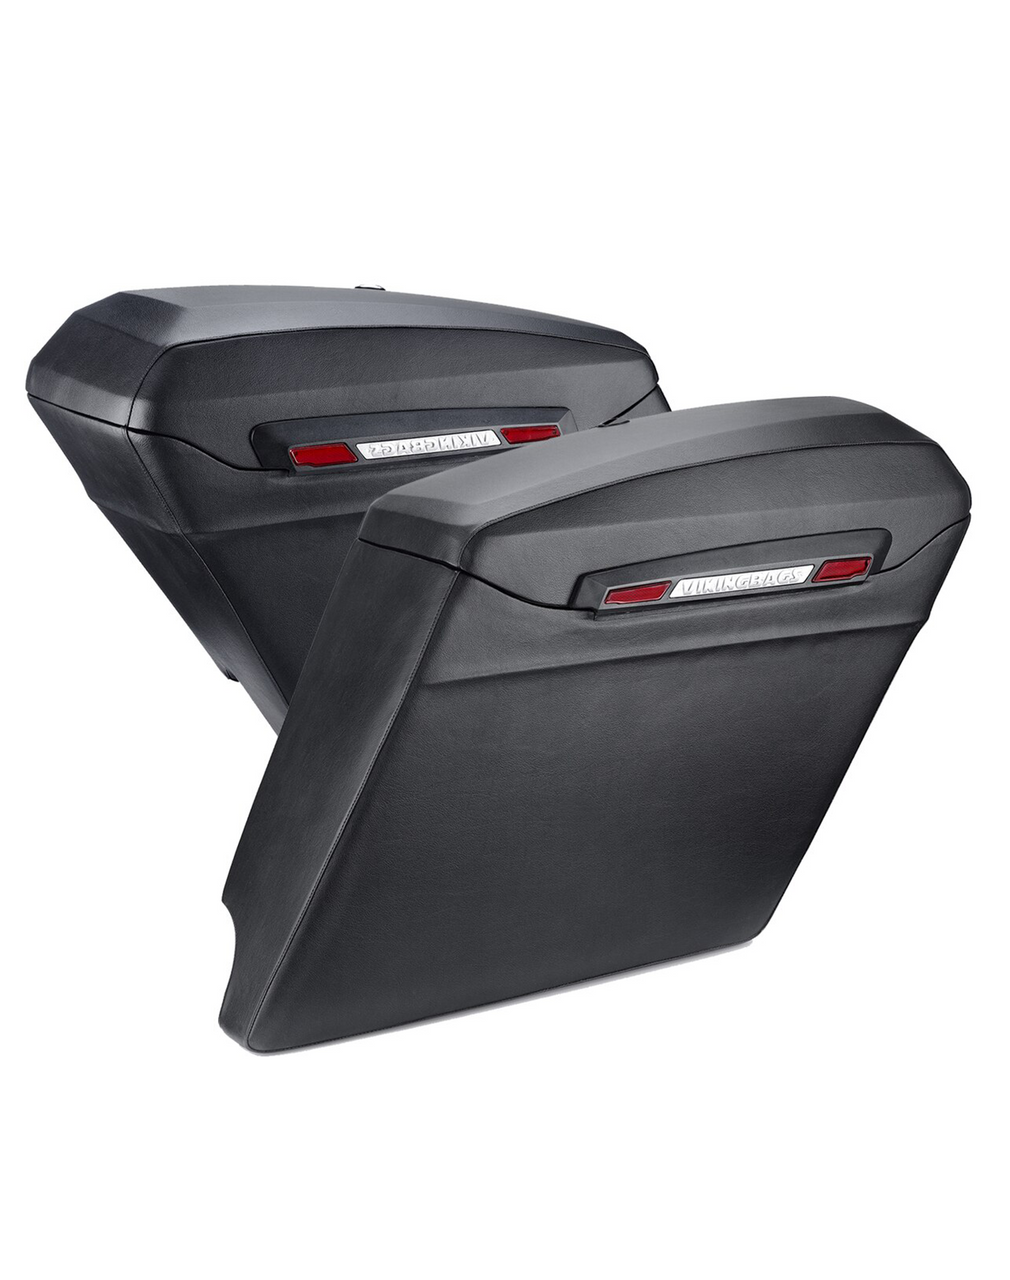 Viking Touring Bagger Leather Covered Stretched Extra Large Saddlebags For Harley Electra Glide Both Bags View